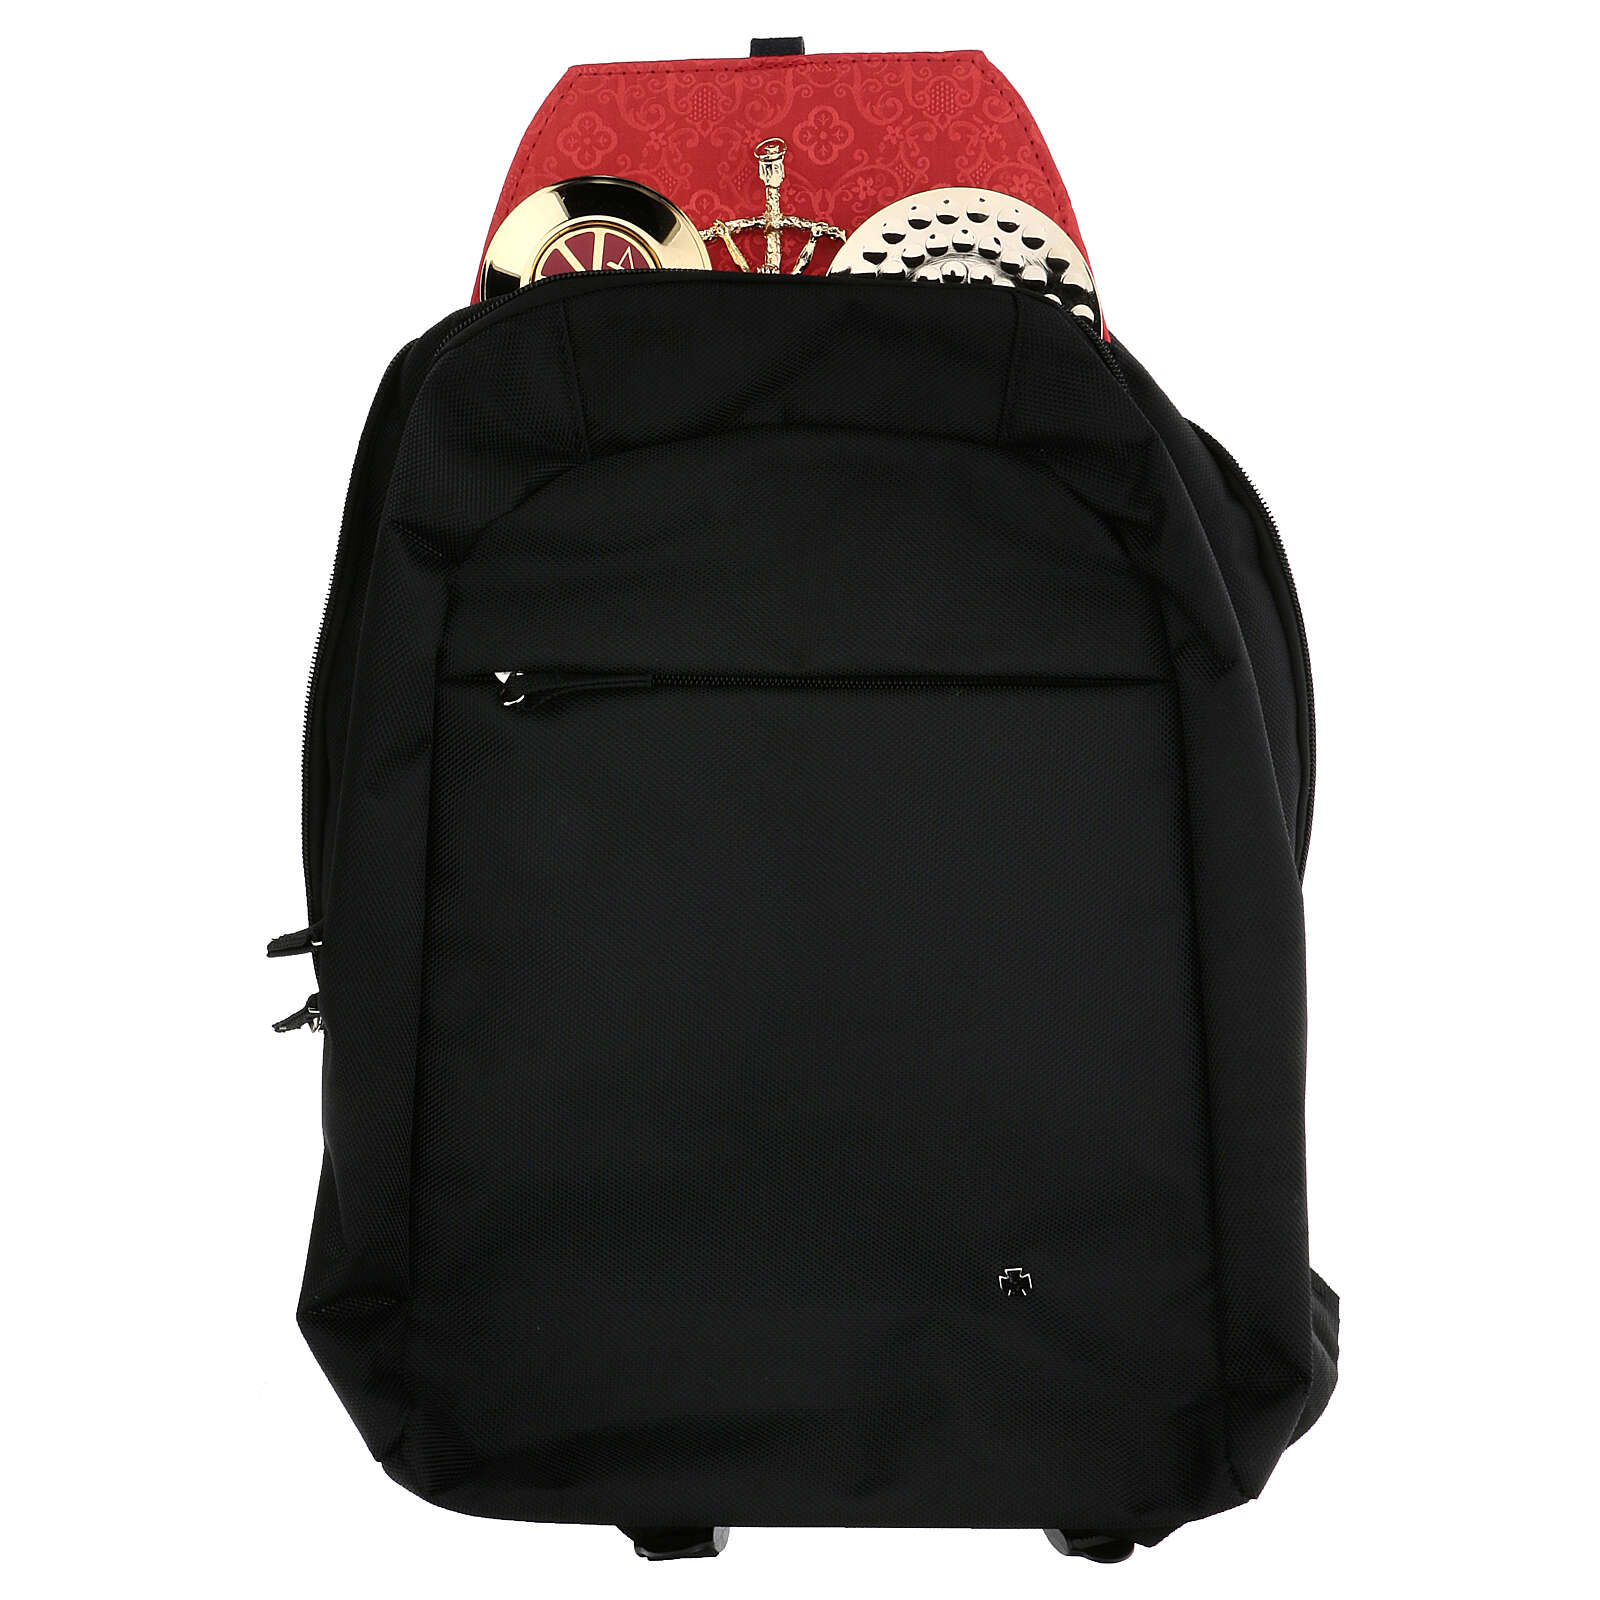 Travel mass kit backpack with red Jacquard lining 3